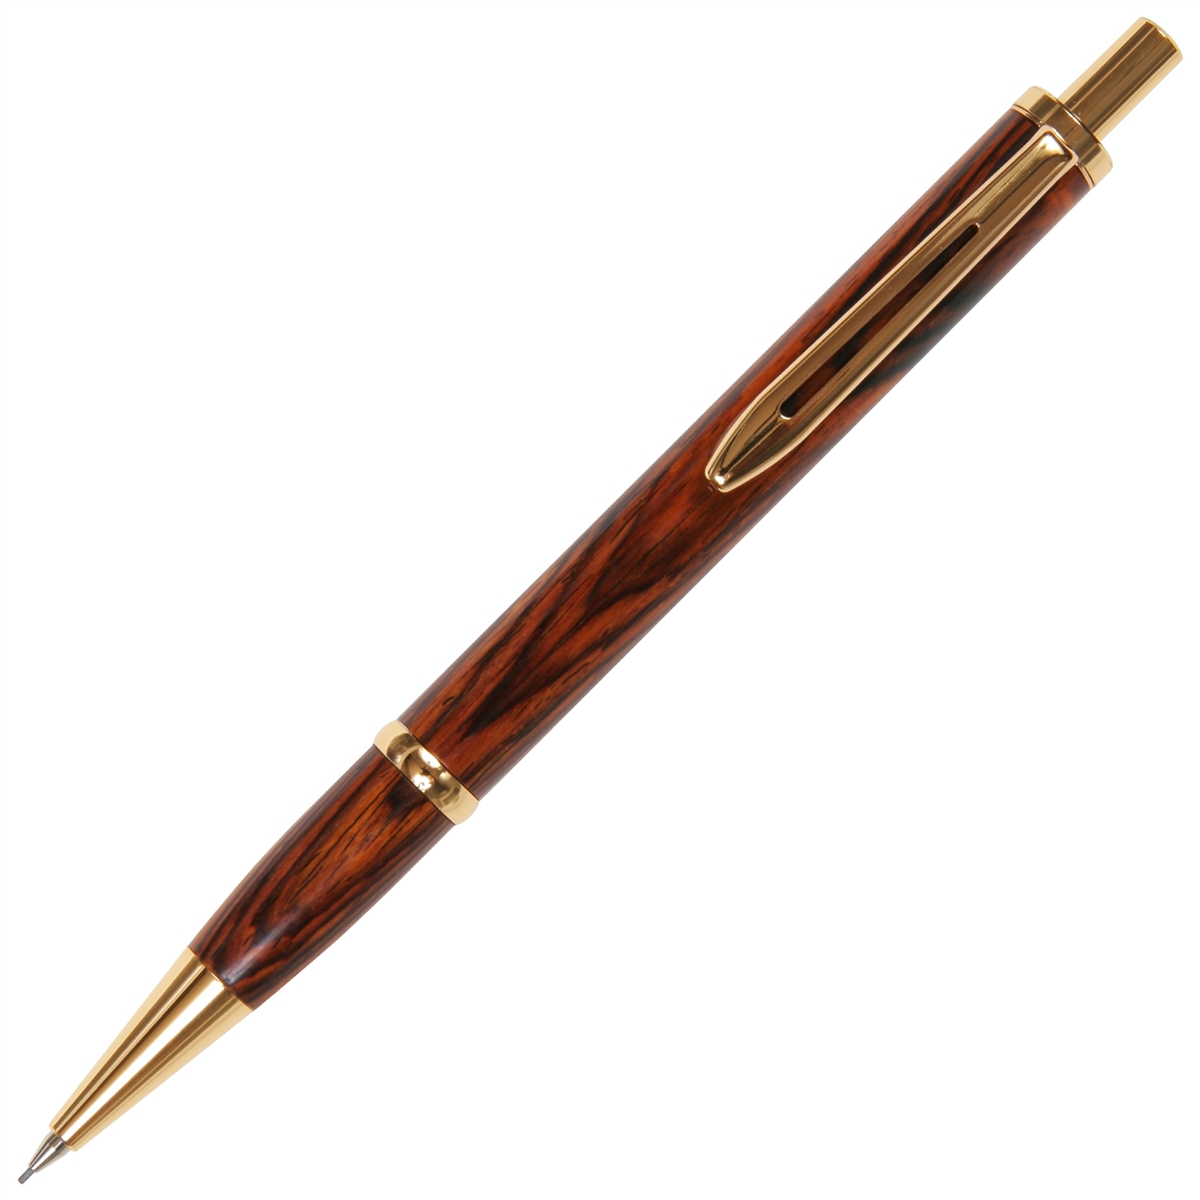 Longwood Pencil - Cocobolo